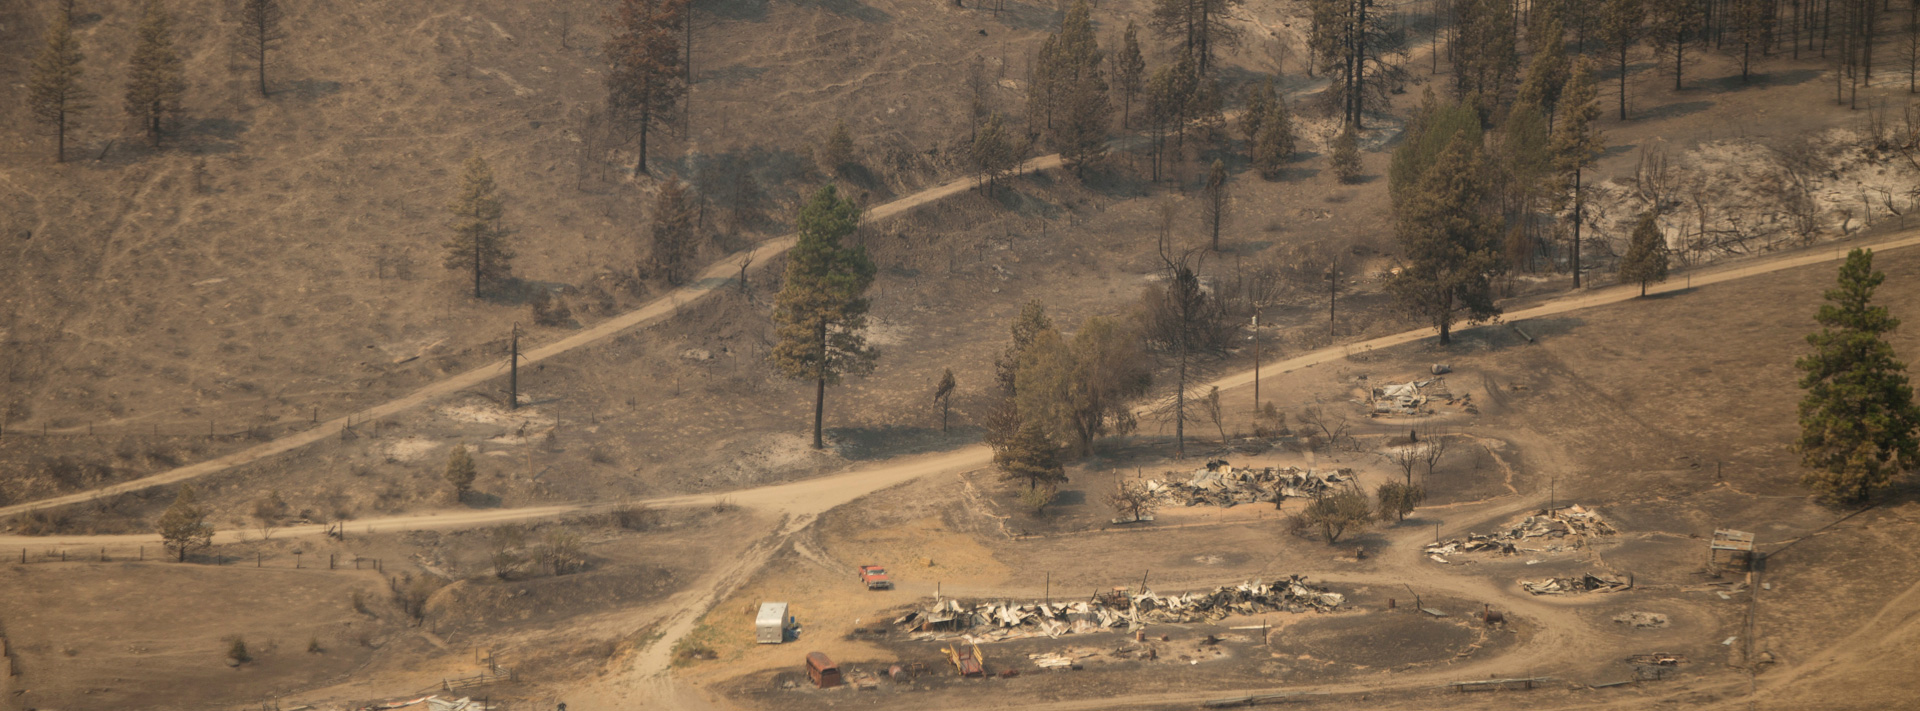 Dry Land from forest fire